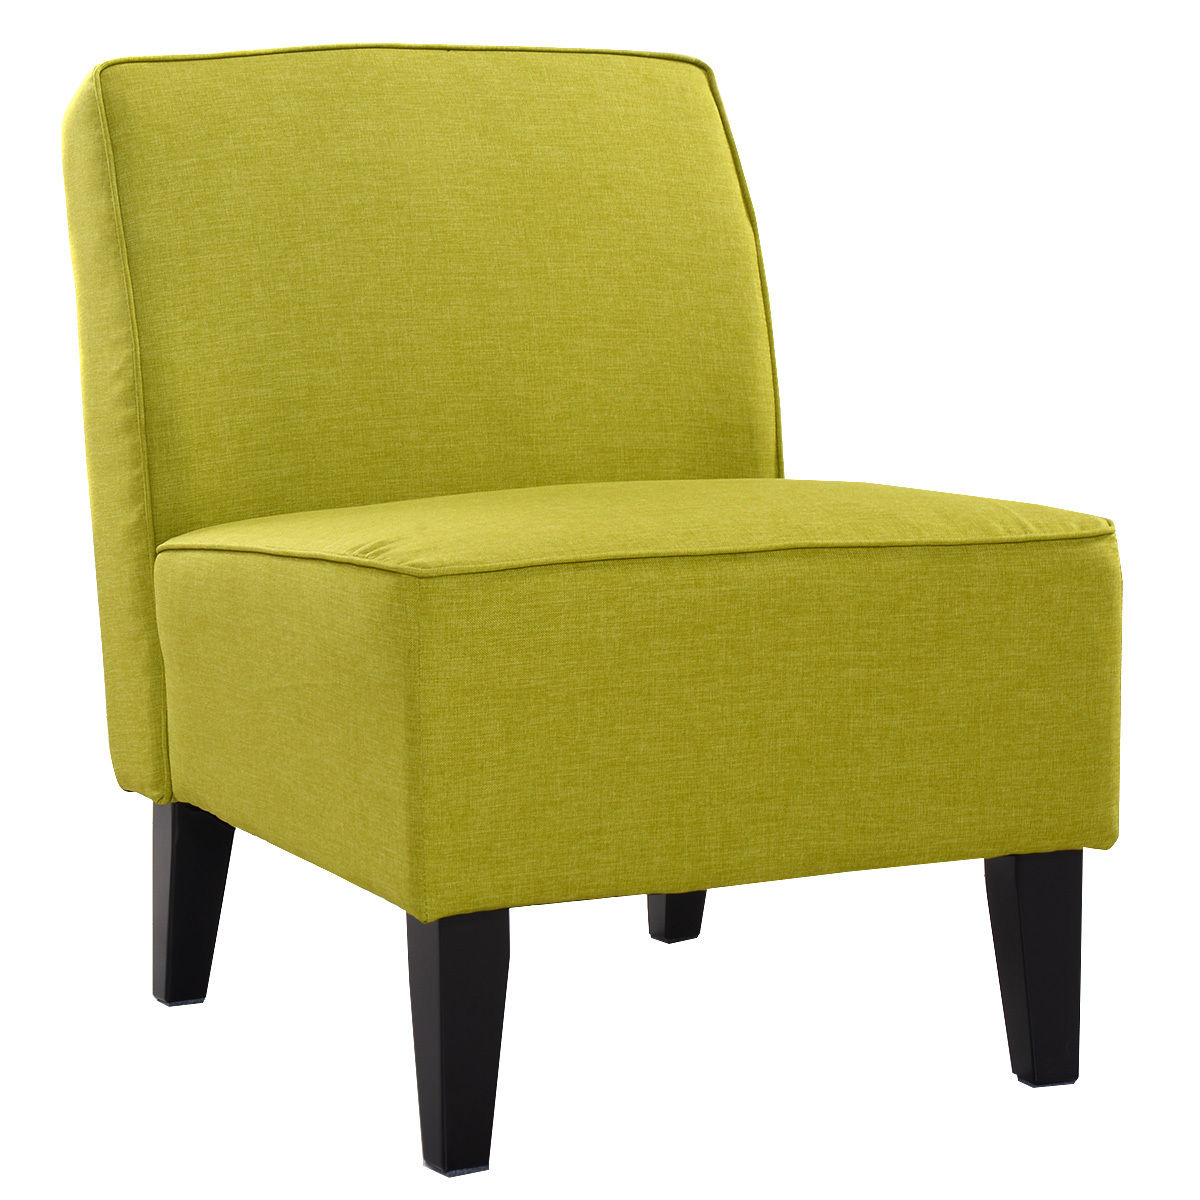 Modern Green Dining Chairs Ruched Spandex Chair Covers Giantex Accent Armless Contemporary